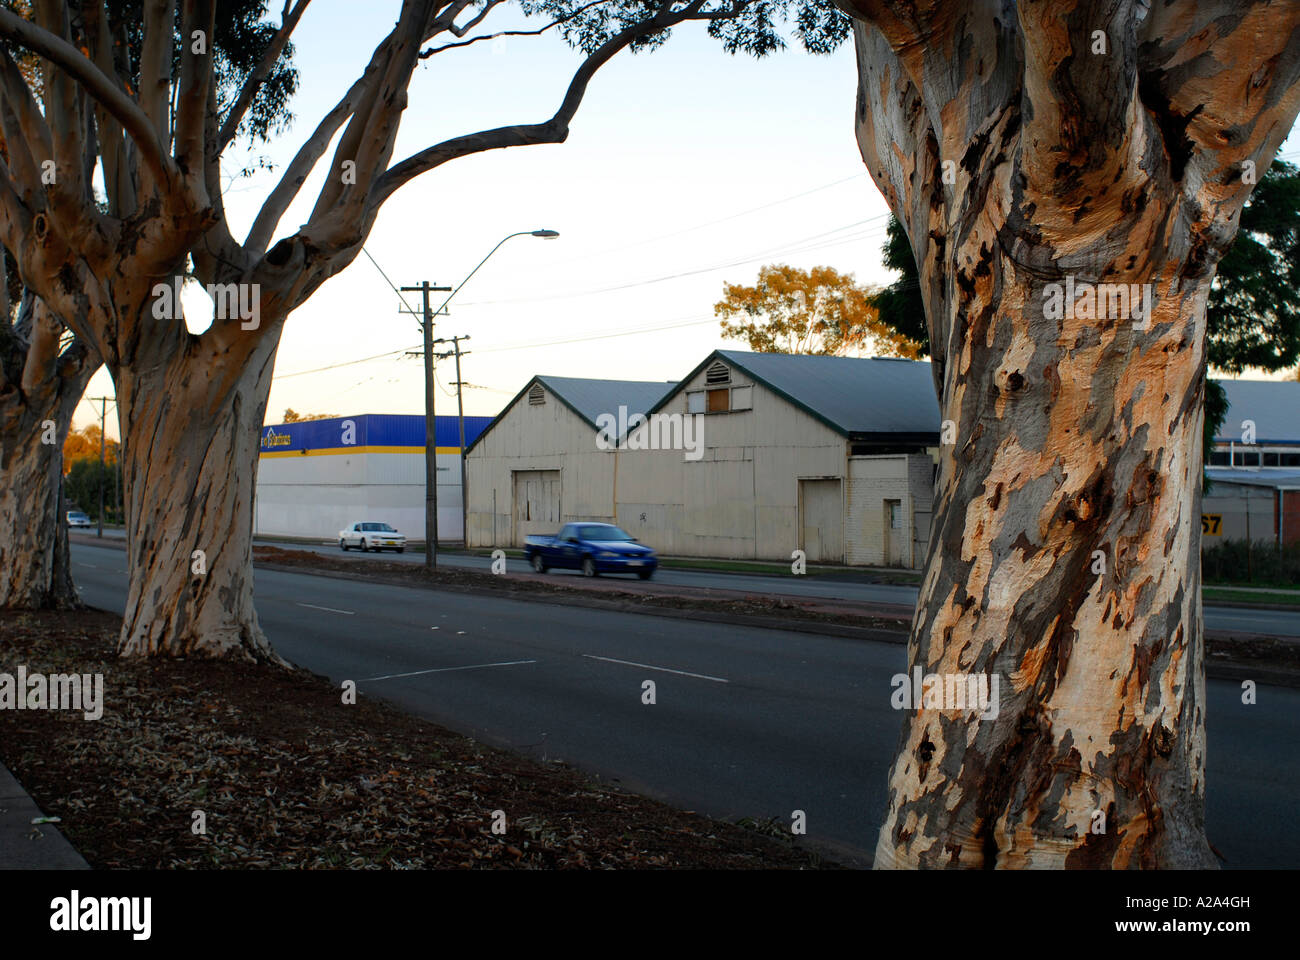 Old factory and warehouse, since demolished, viewed through old sugar-gums. - Stock Image